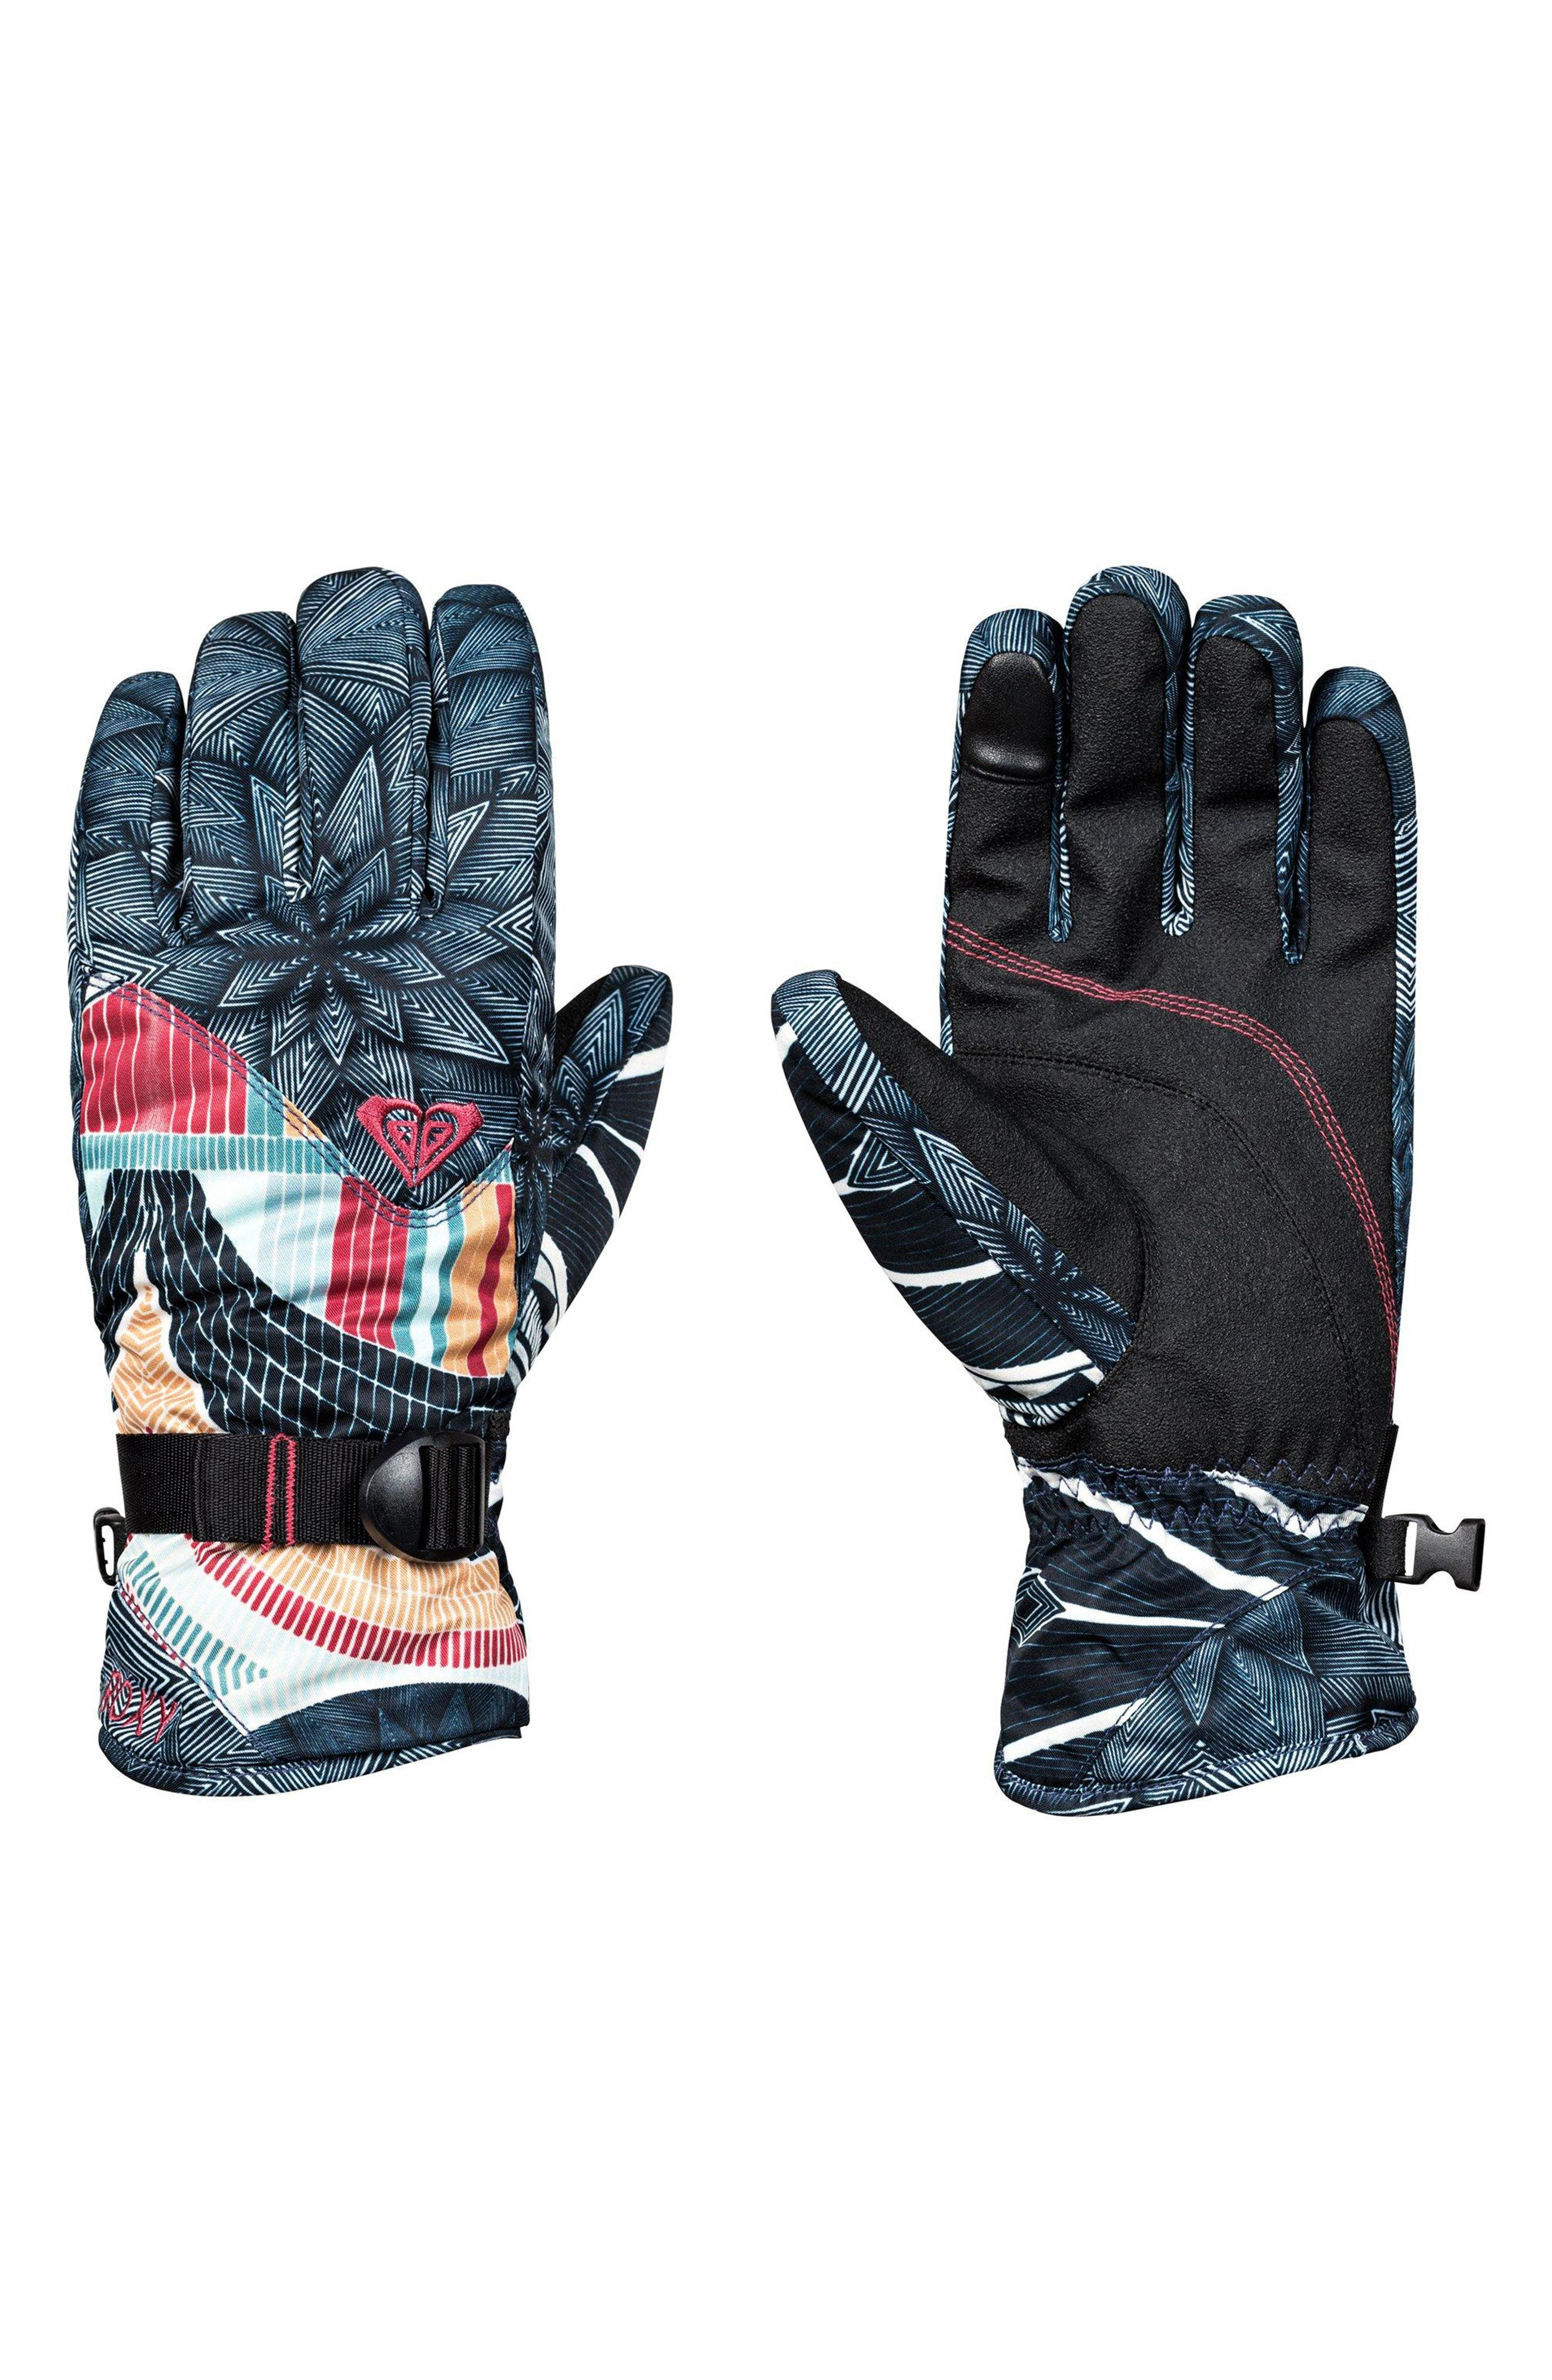 Jetty Print Snow Sport Gloves,                         Main,                         color, 002